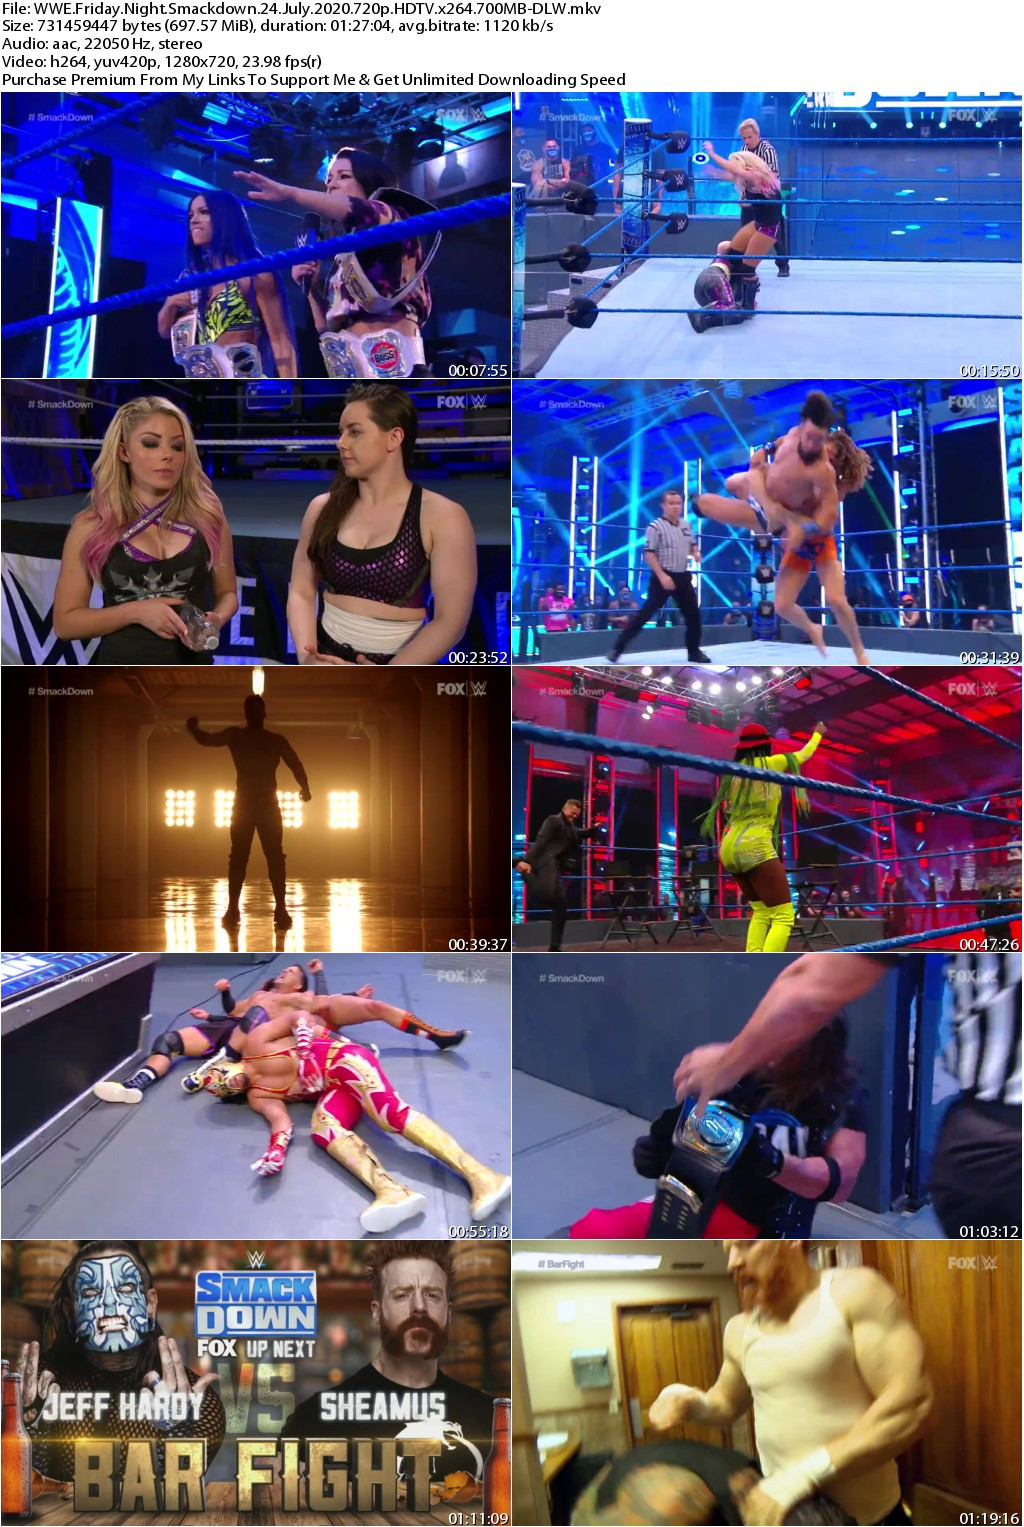 WWE Friday Night Smackdown 24 July 2020 720p HDTV x264 700MB-DLW